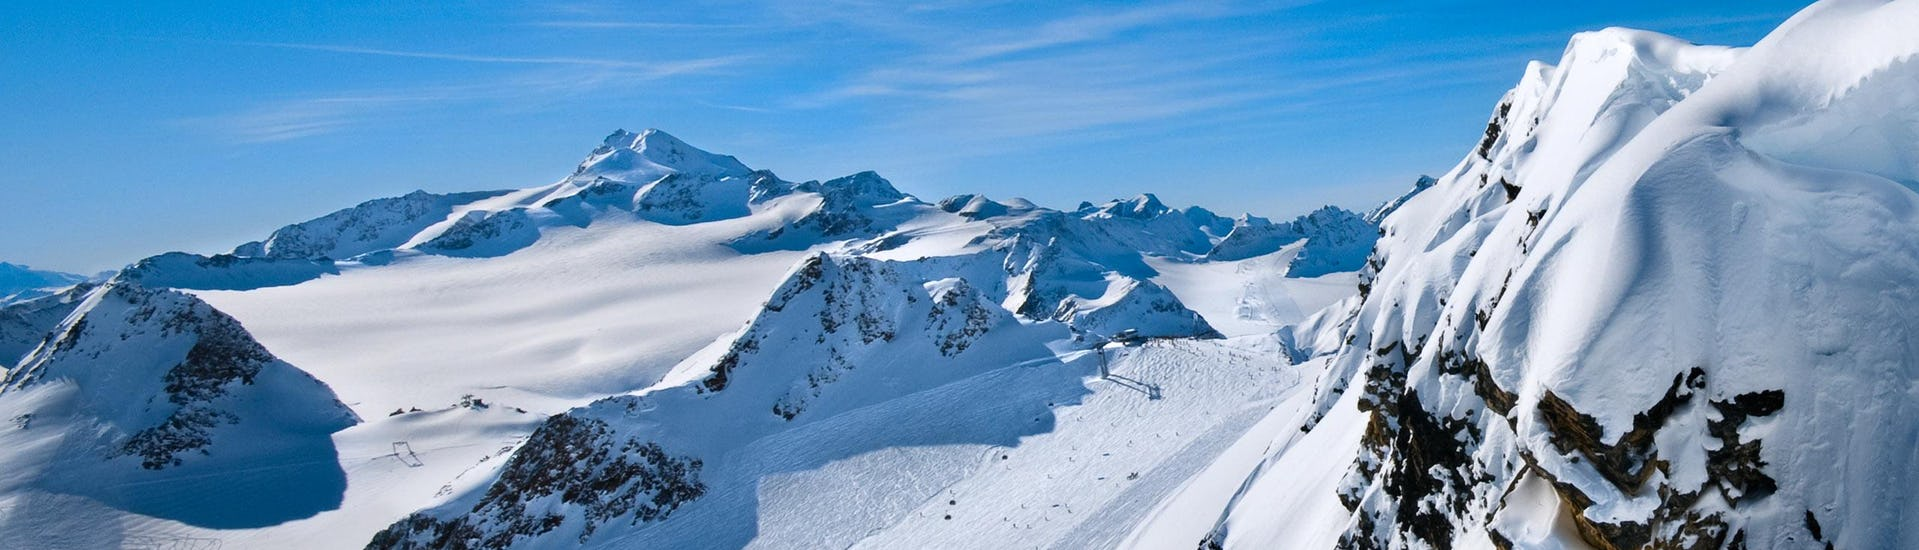 A view of a snowy mountain top in the ski resort of Czech Republic, where ski schools gather to start their ski lessons.